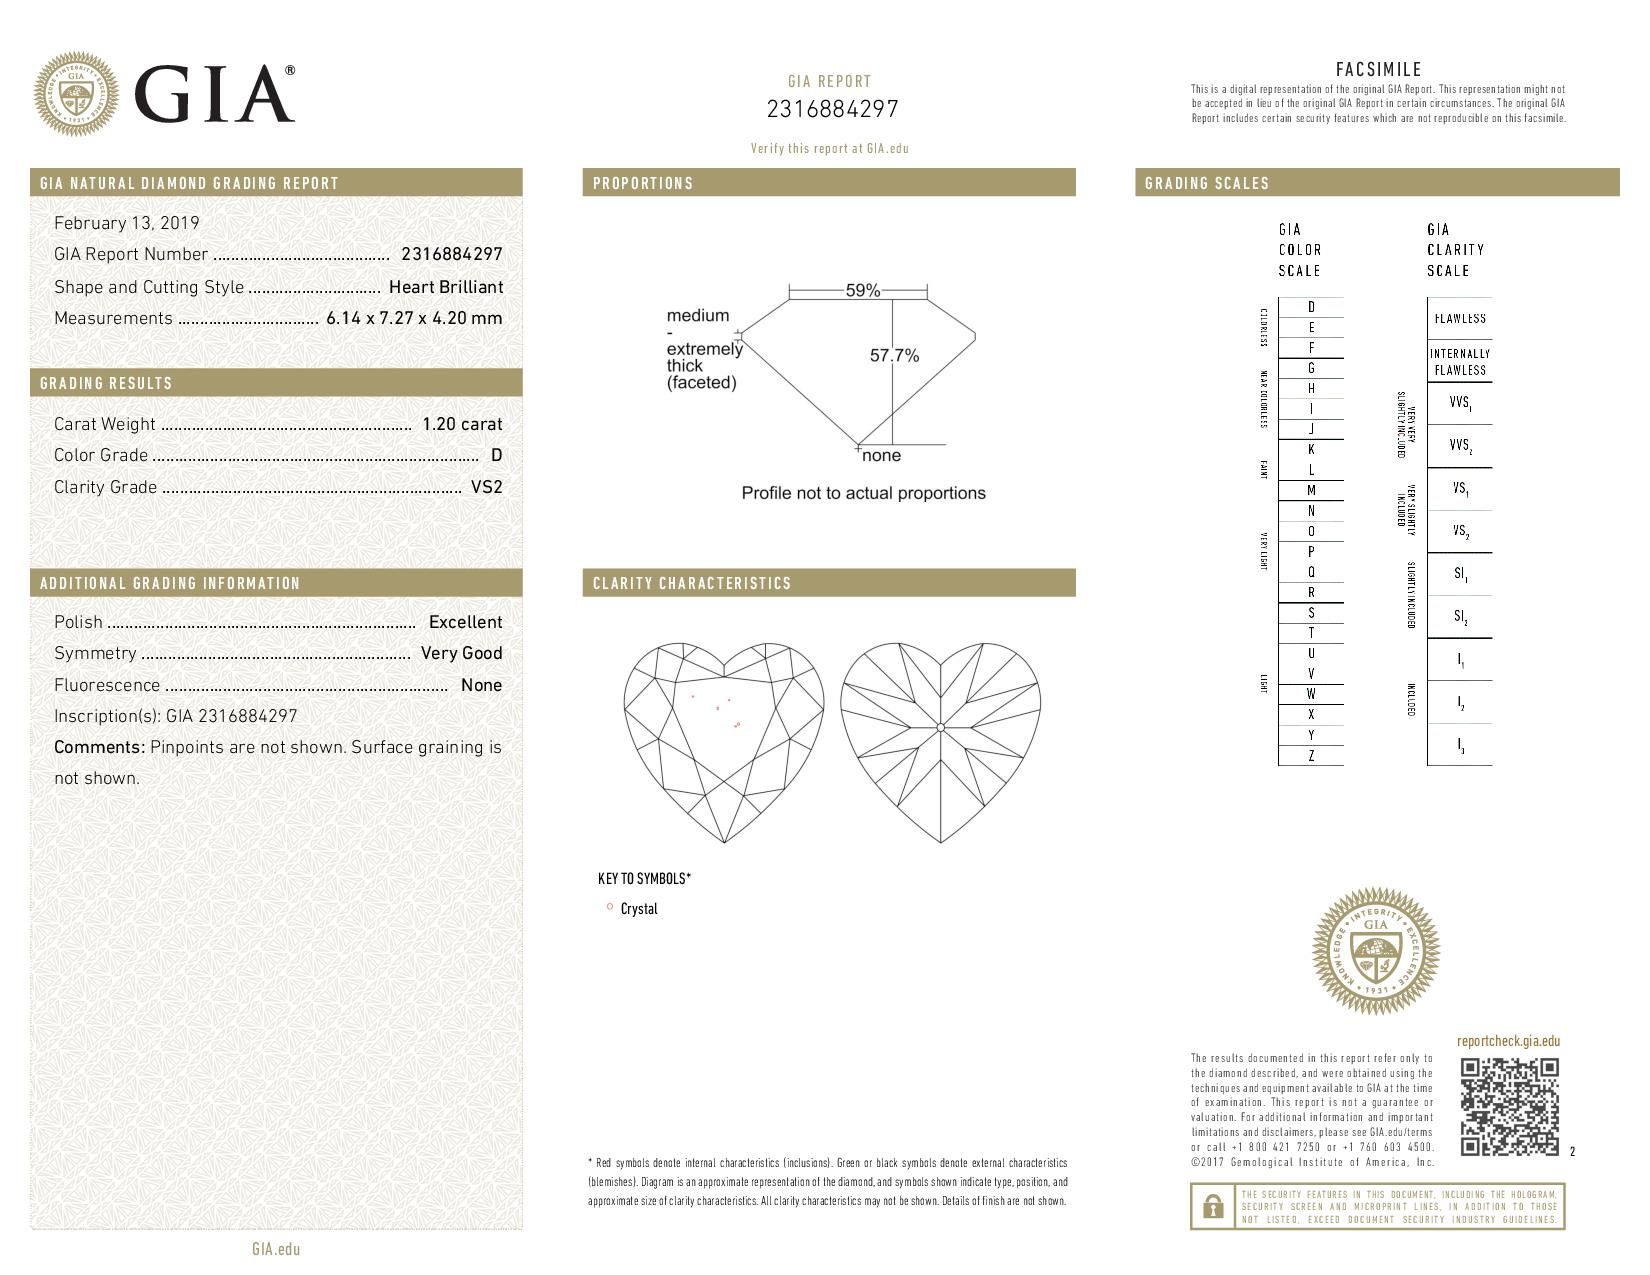 This is a 1.20 carat heart shape, D color, VS2 clarity natural diamond accompanied by a GIA grading report.